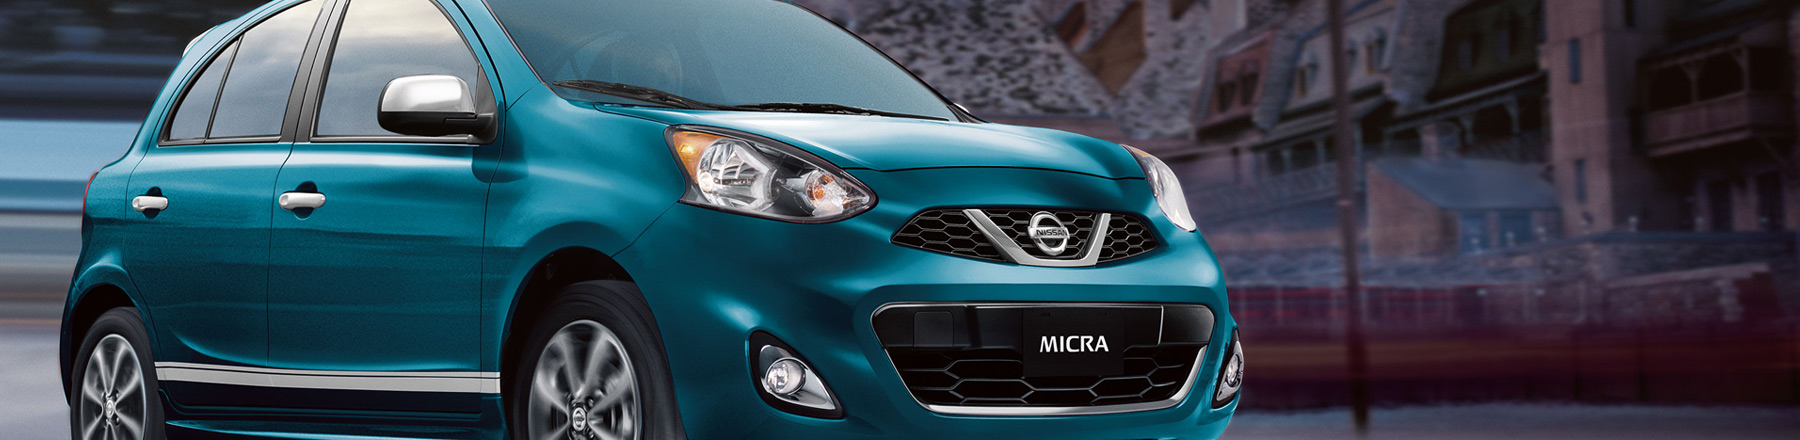 2016 Nissan Micra in Calgary, AB